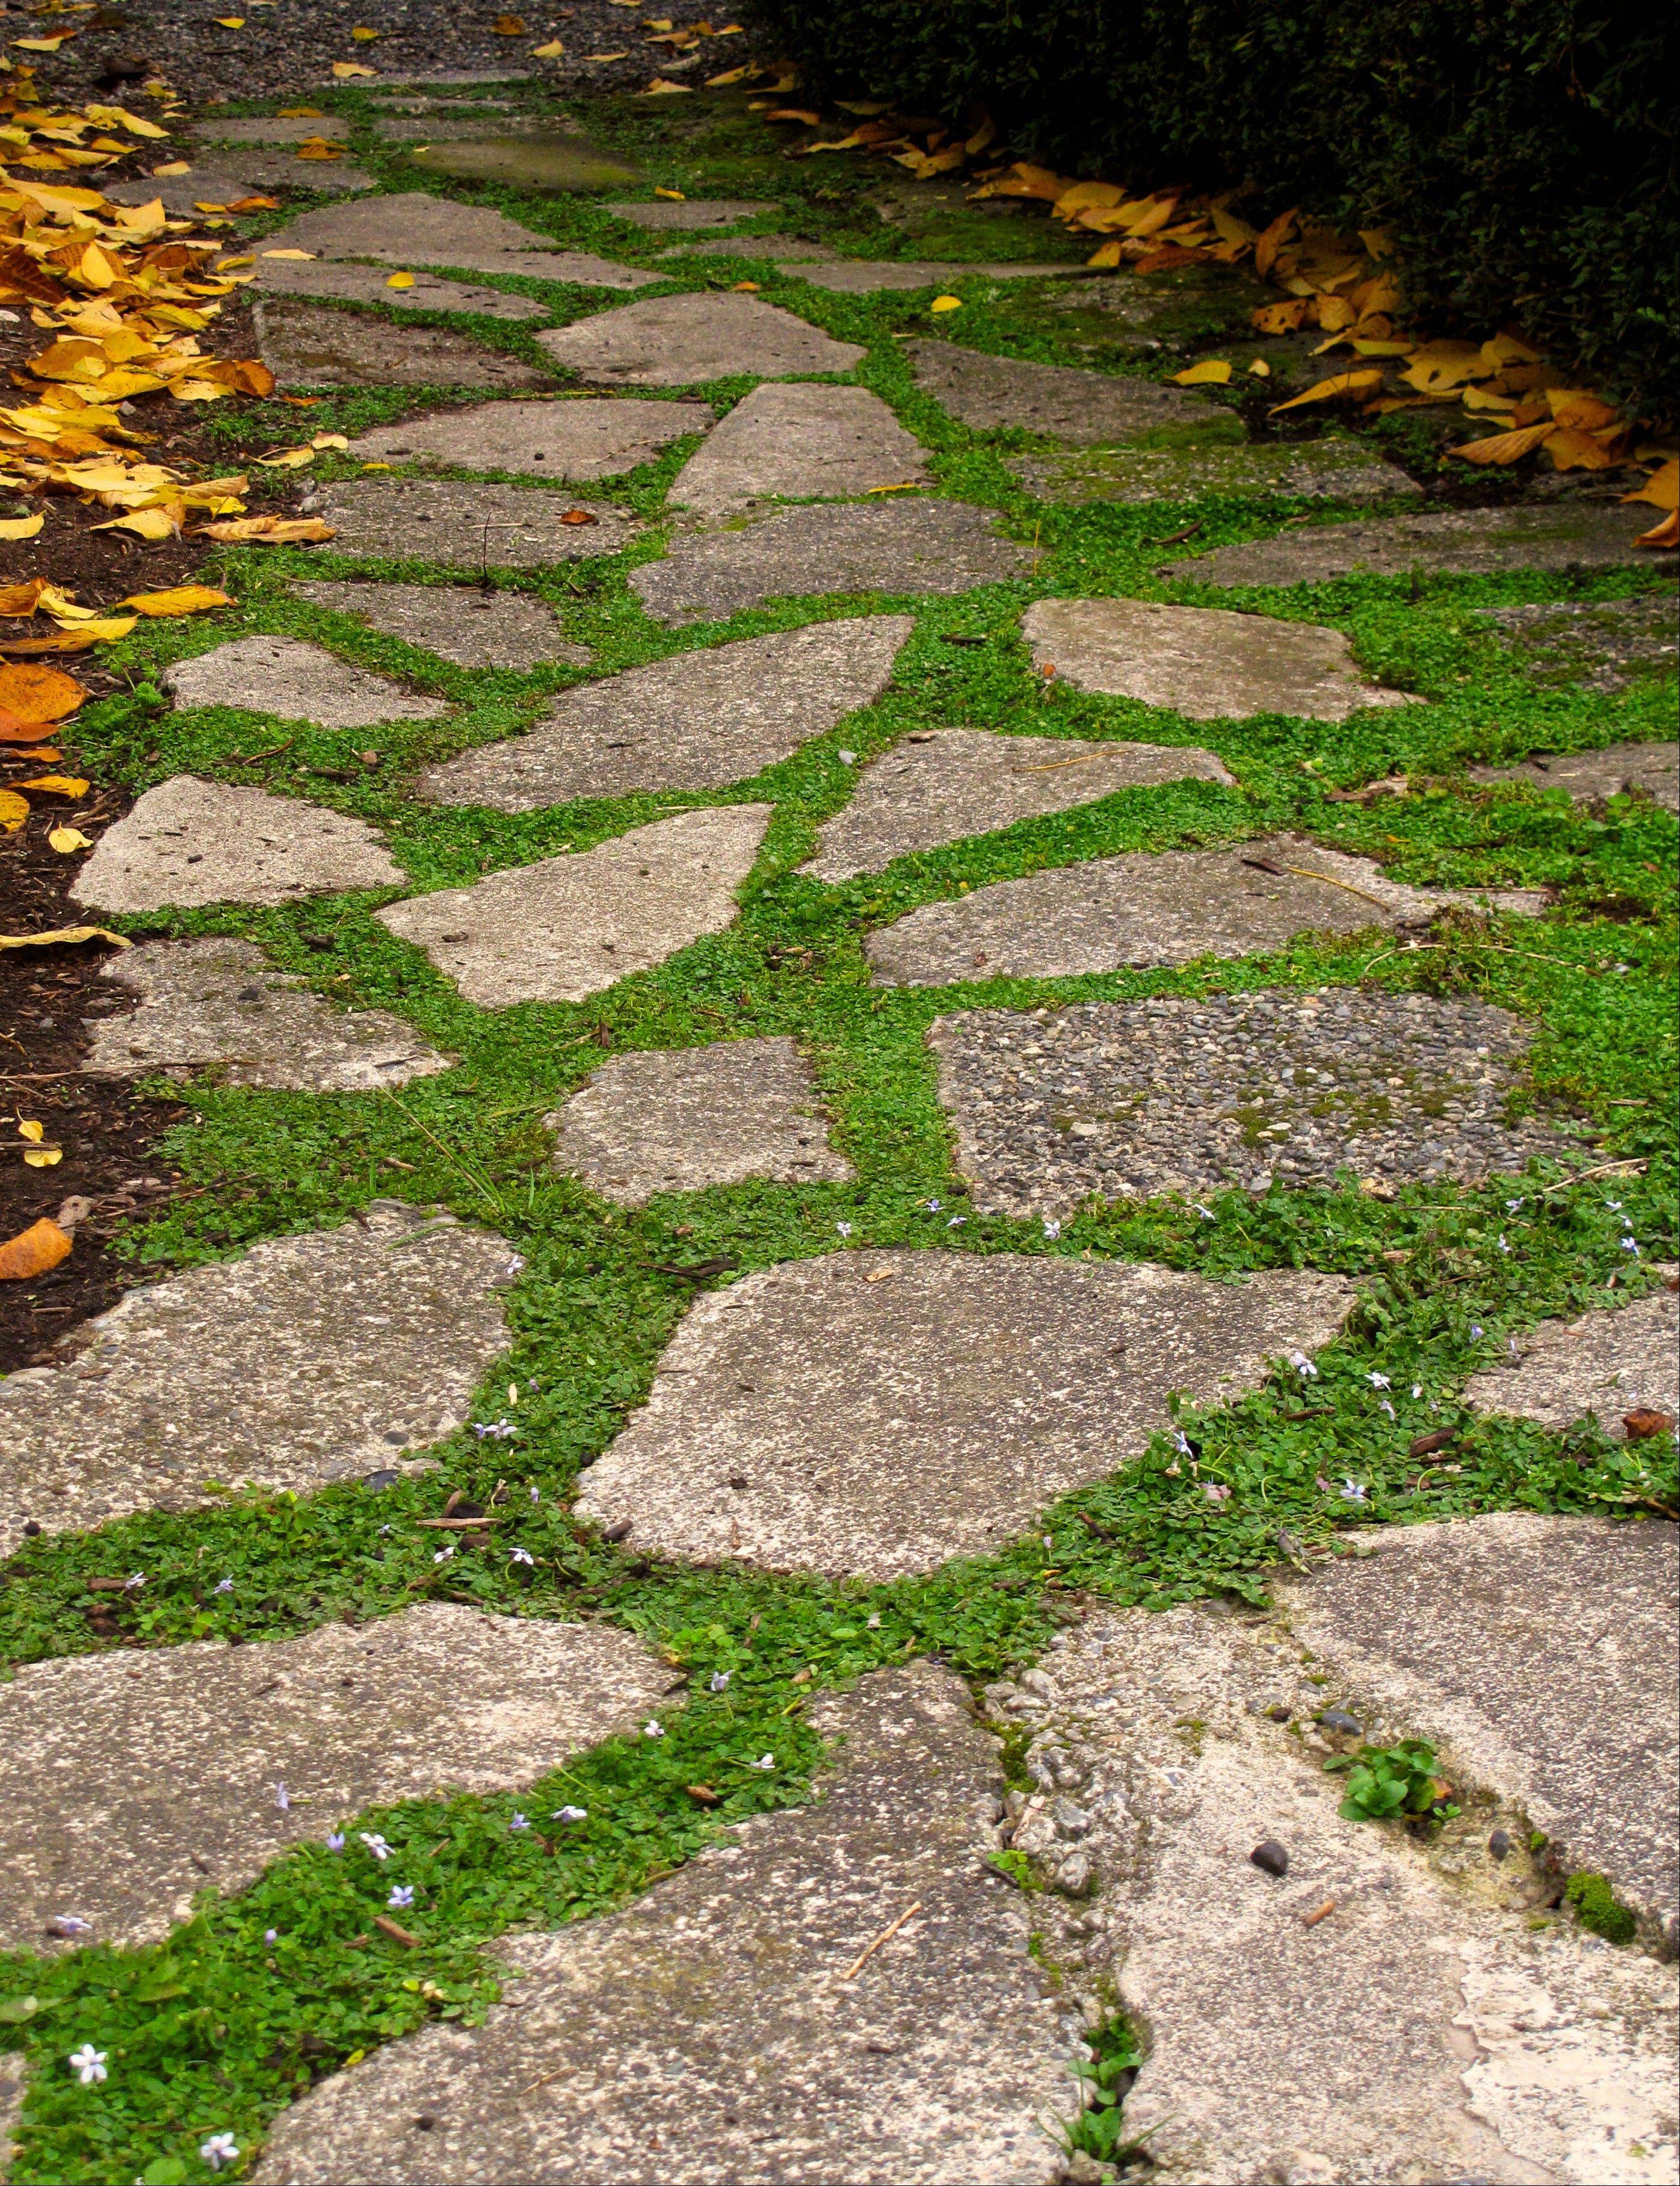 Several flats of potted, walk-on plants are laid out alongside the flagstones of a pathway in Langley, Wash. The plants are divided into several pieces before being placed in the ground, where they grow quickly into a single, weed-choking mat that adds color and contrast to the stones.